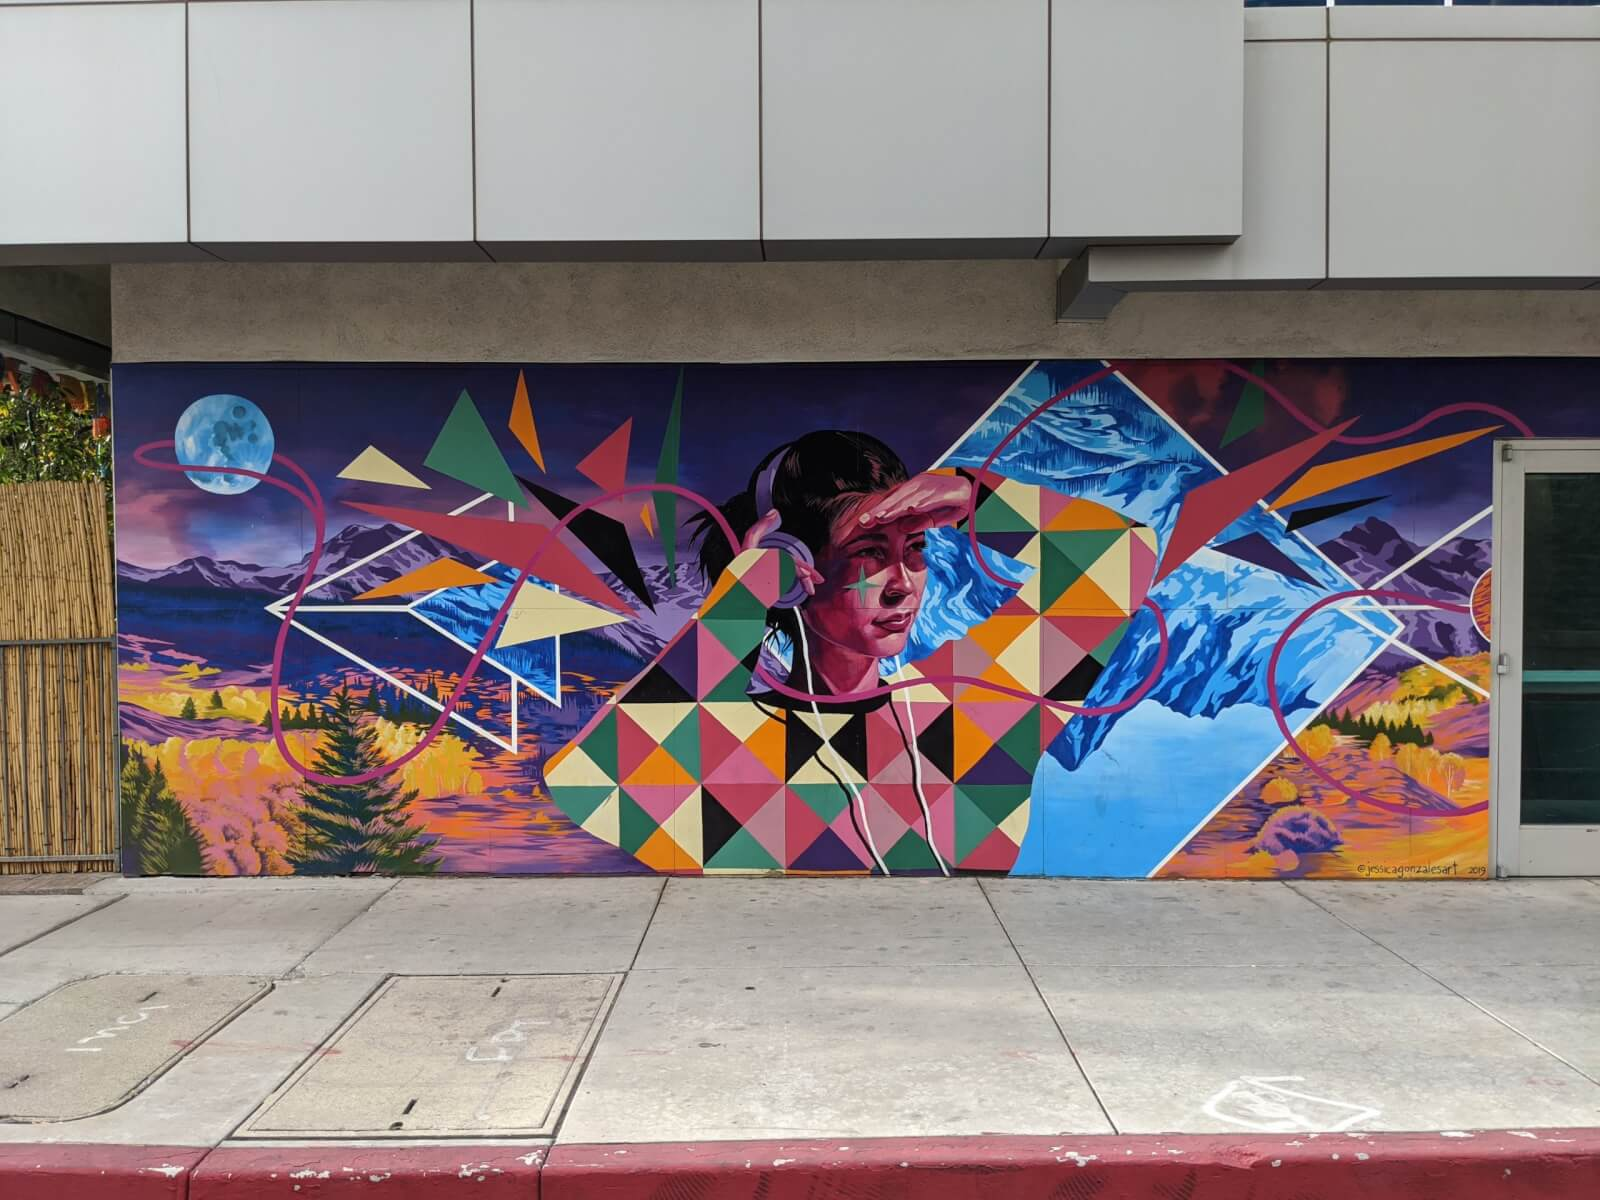 A close up of a colorful mural of a young woman wearing headphones